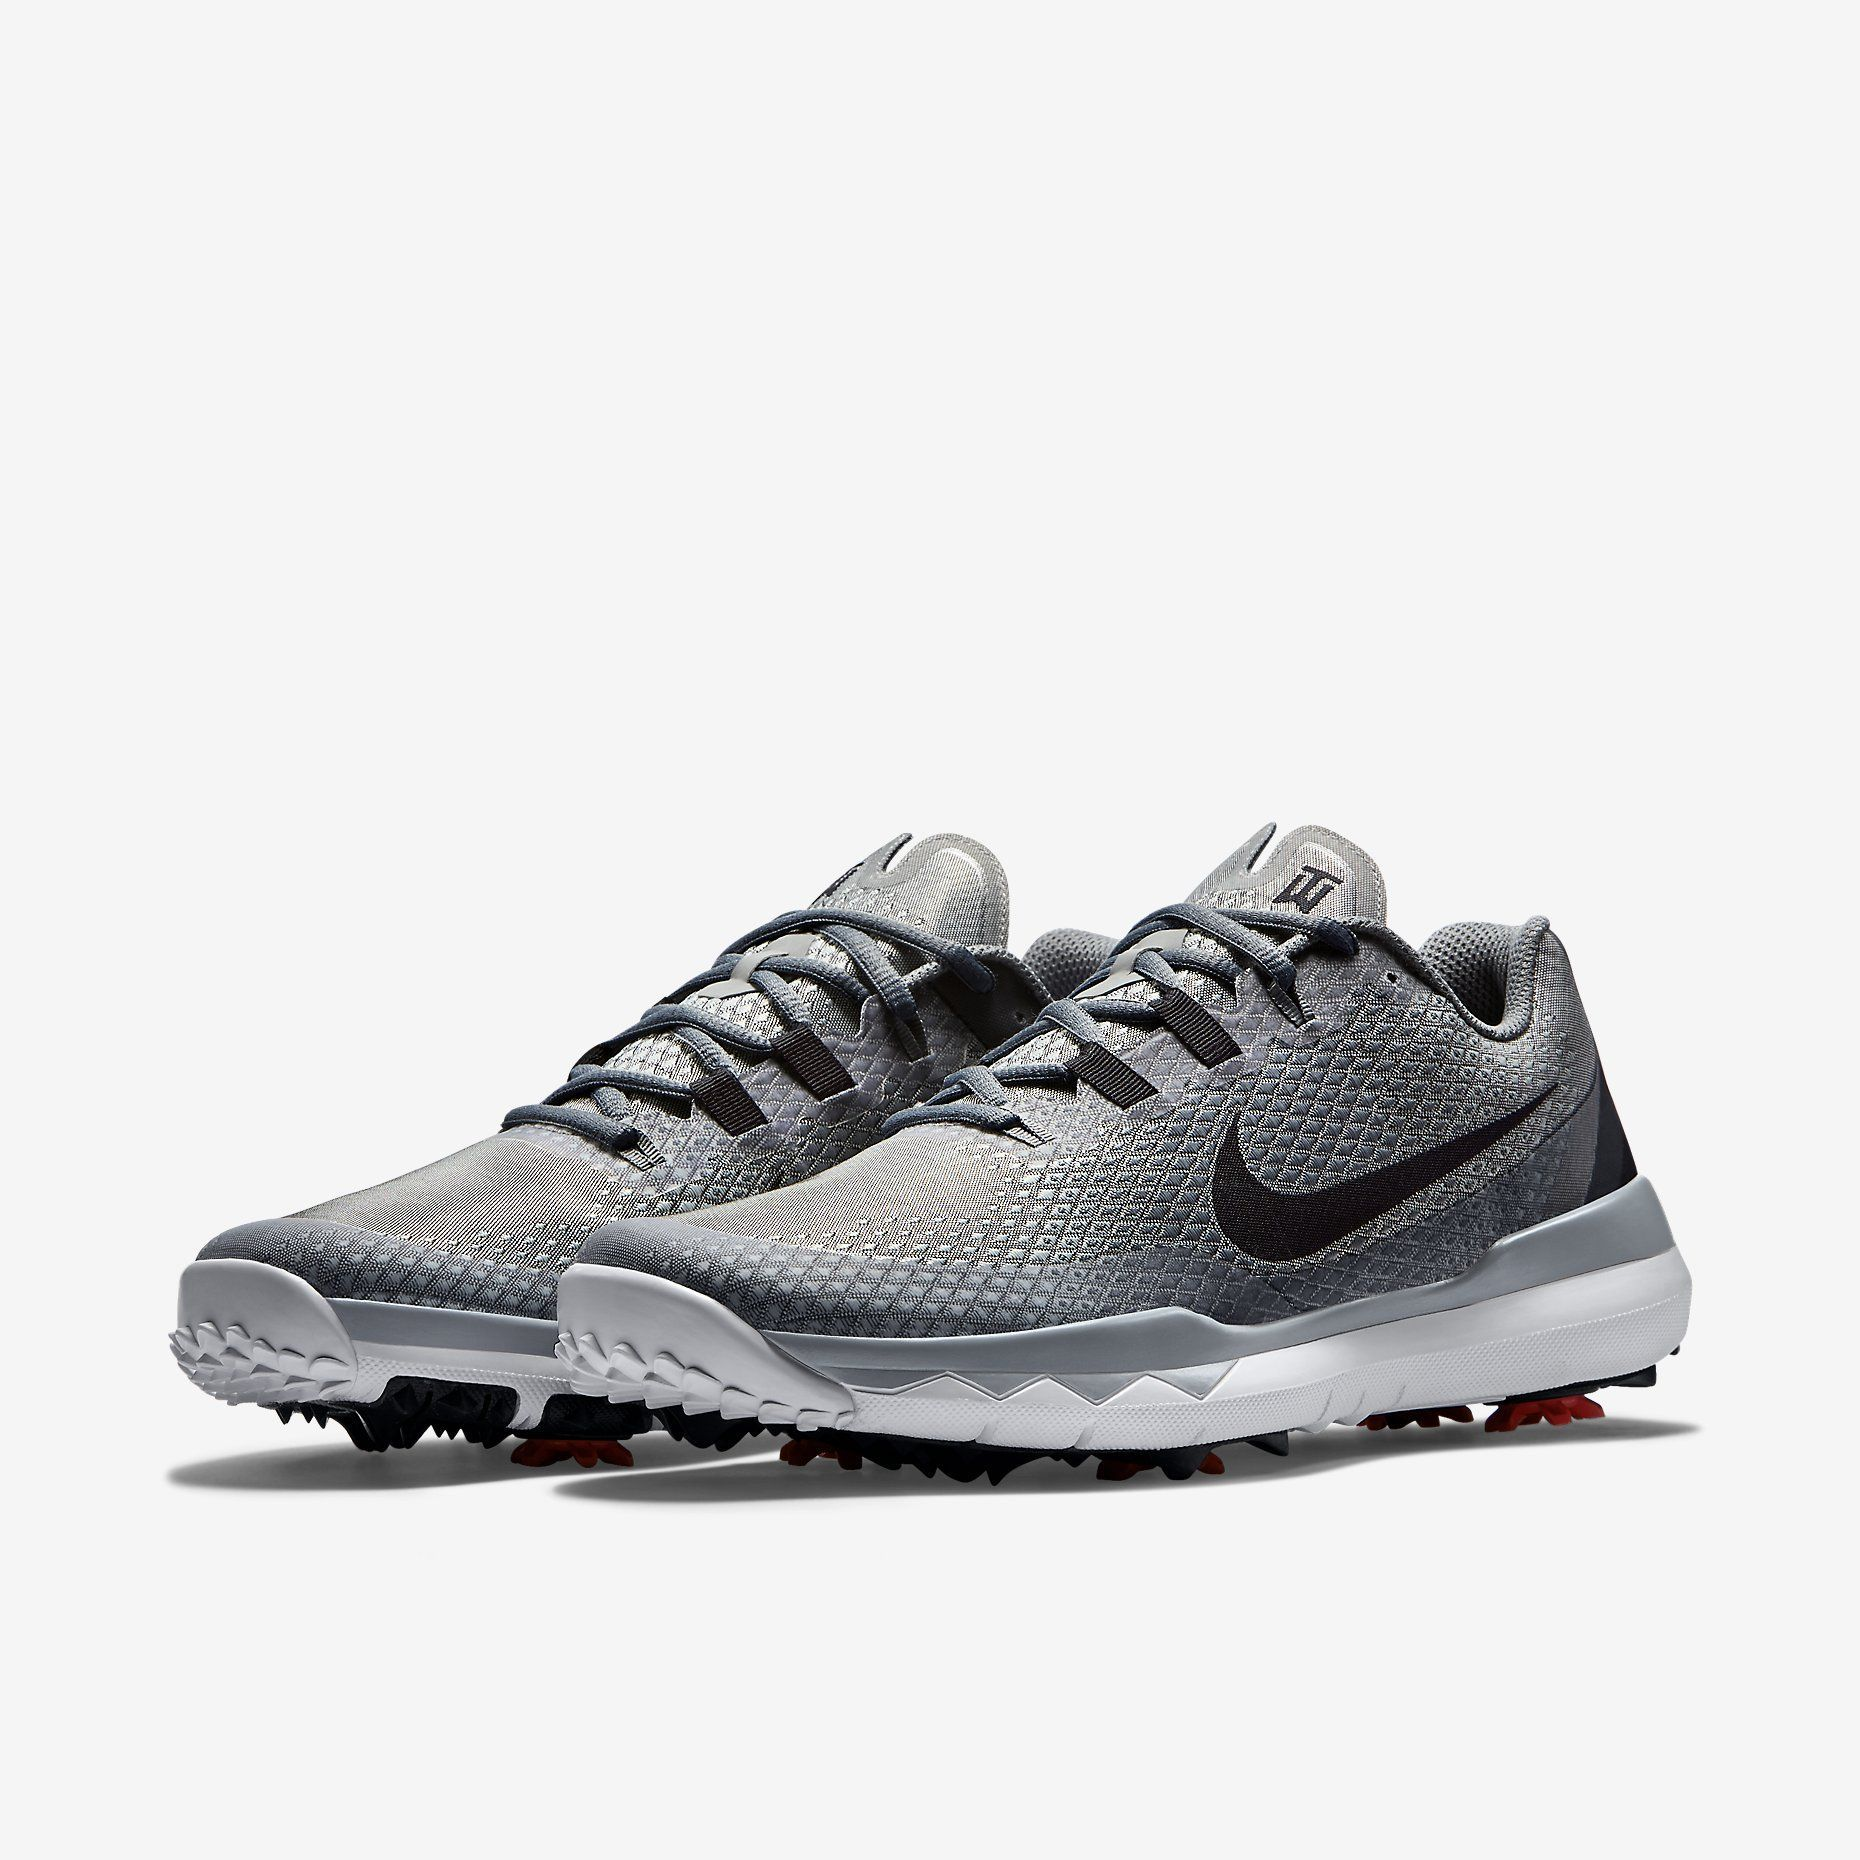 new style da456 7fefc Nike TW  15 Men s Golf Shoe. Nike Store  GolfShoes